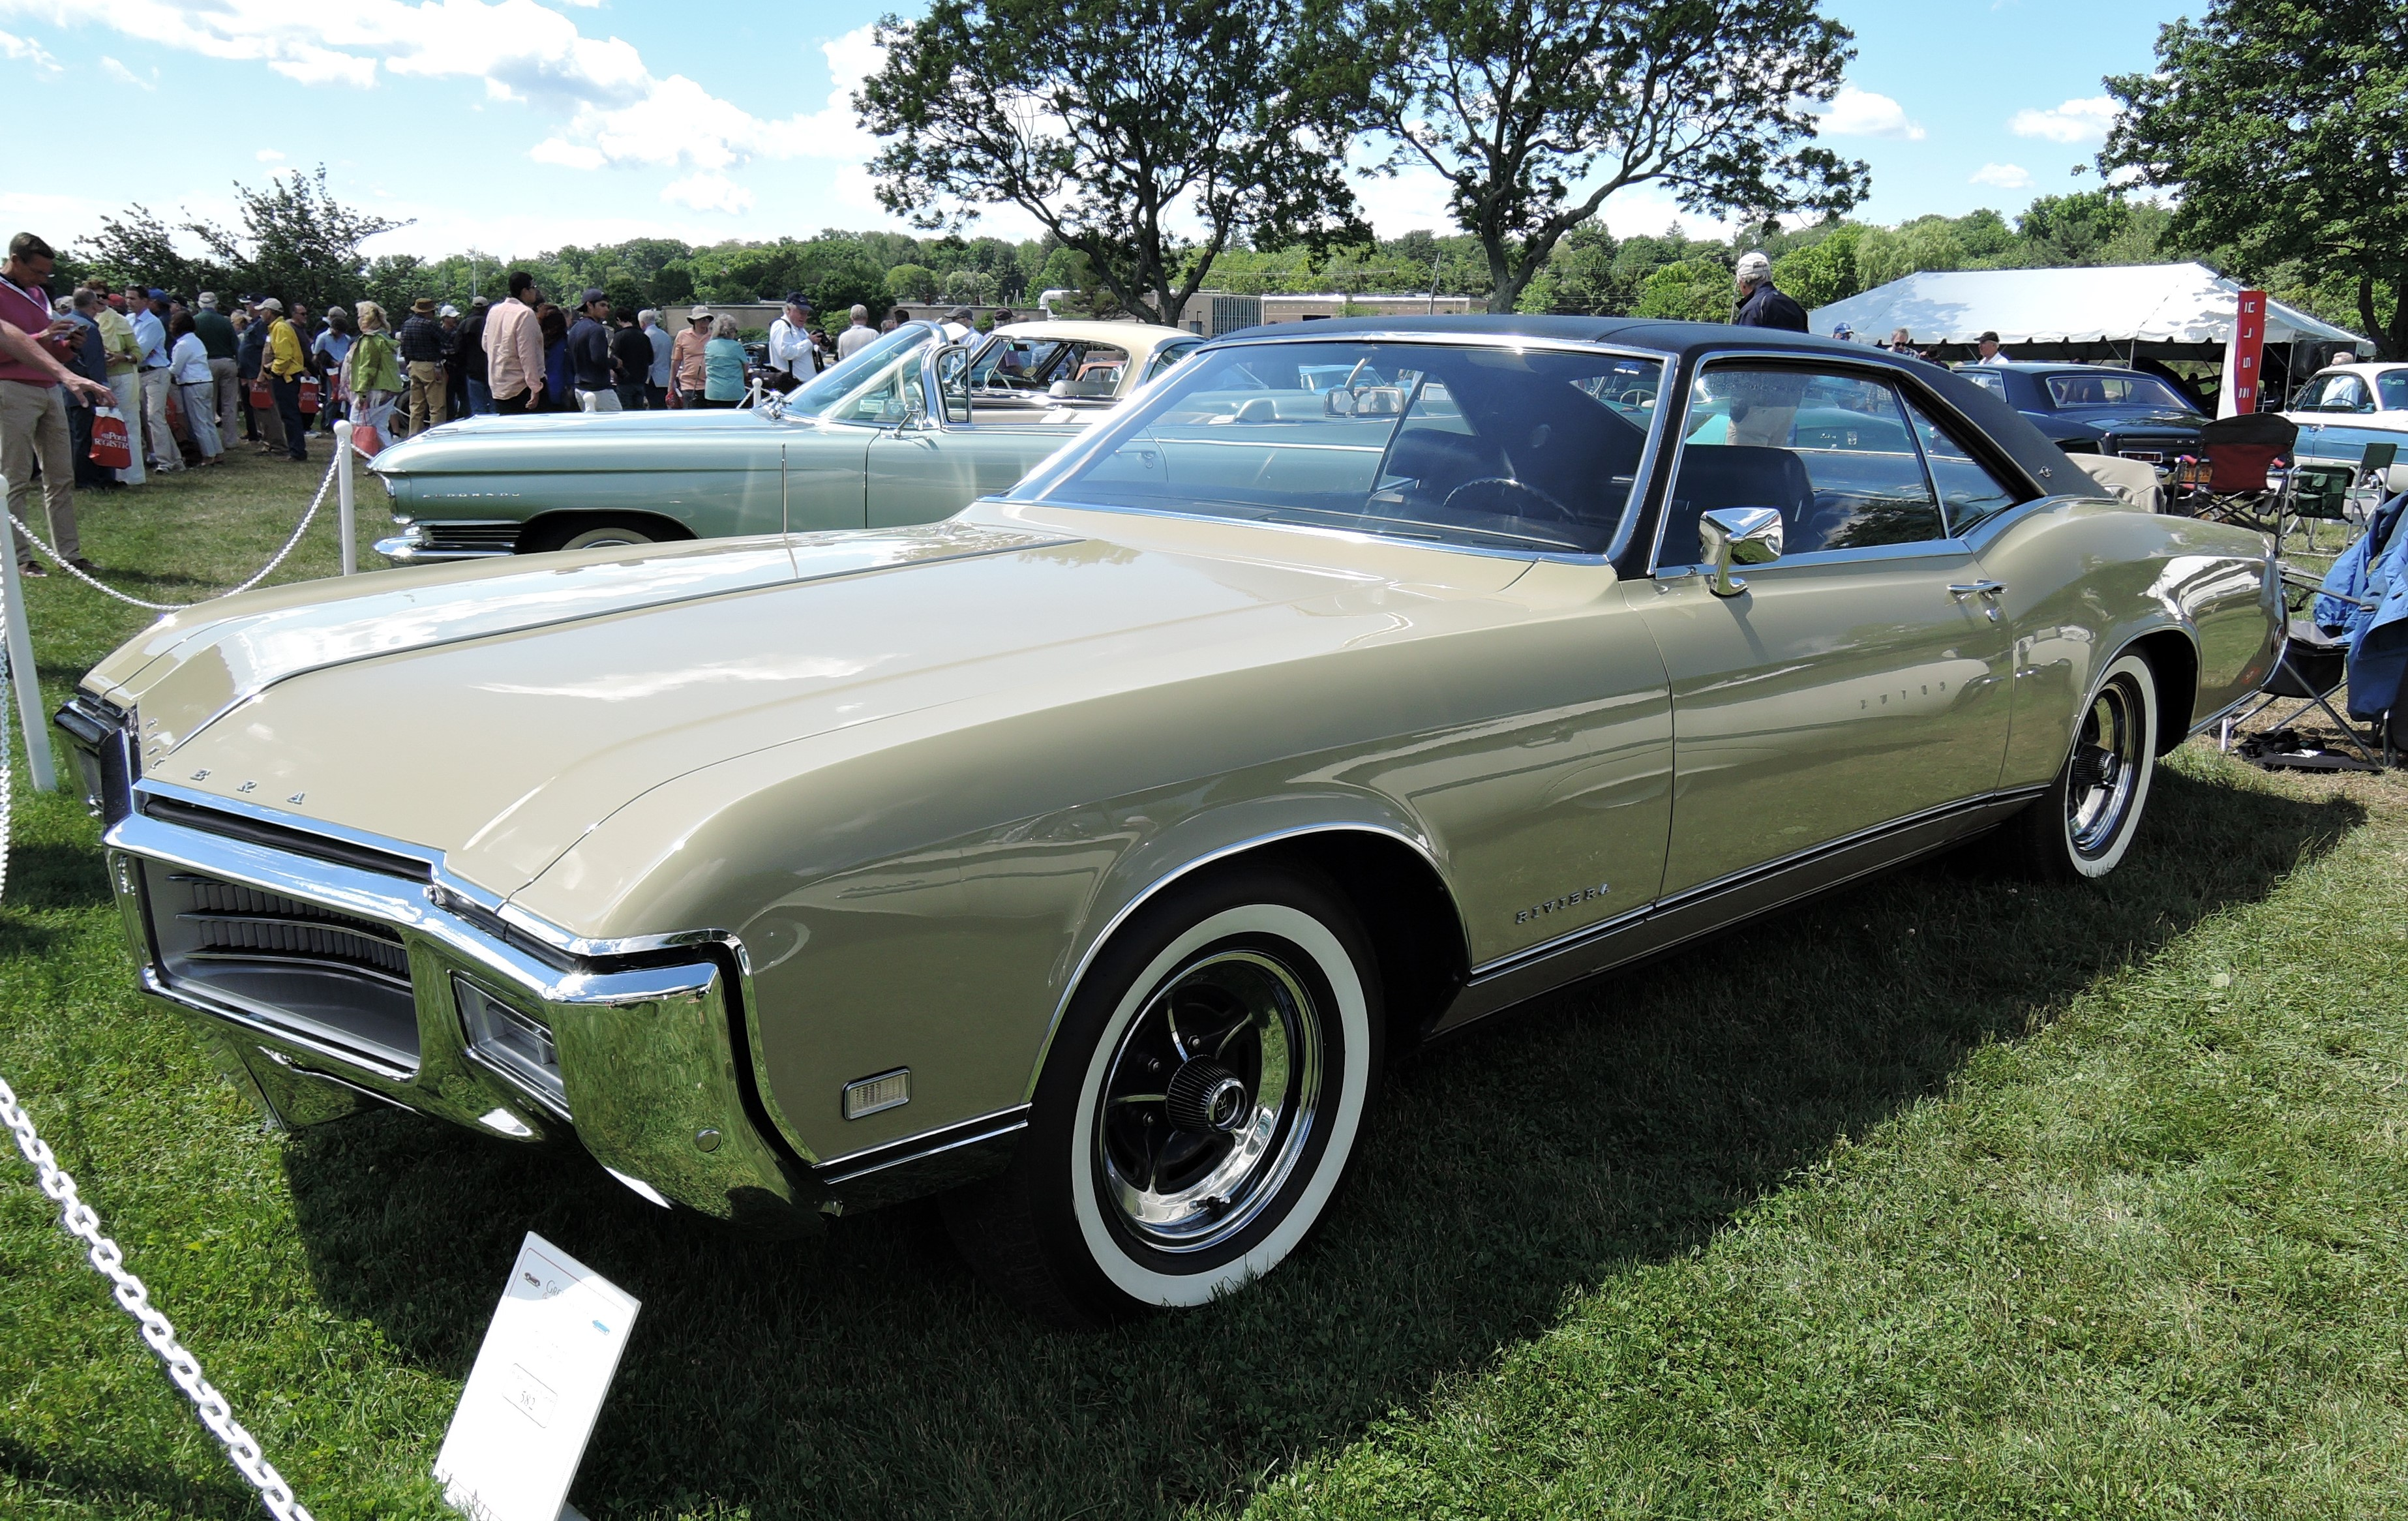 1969 Buick Riviera - Greenwich Concours d'Elegance 2017